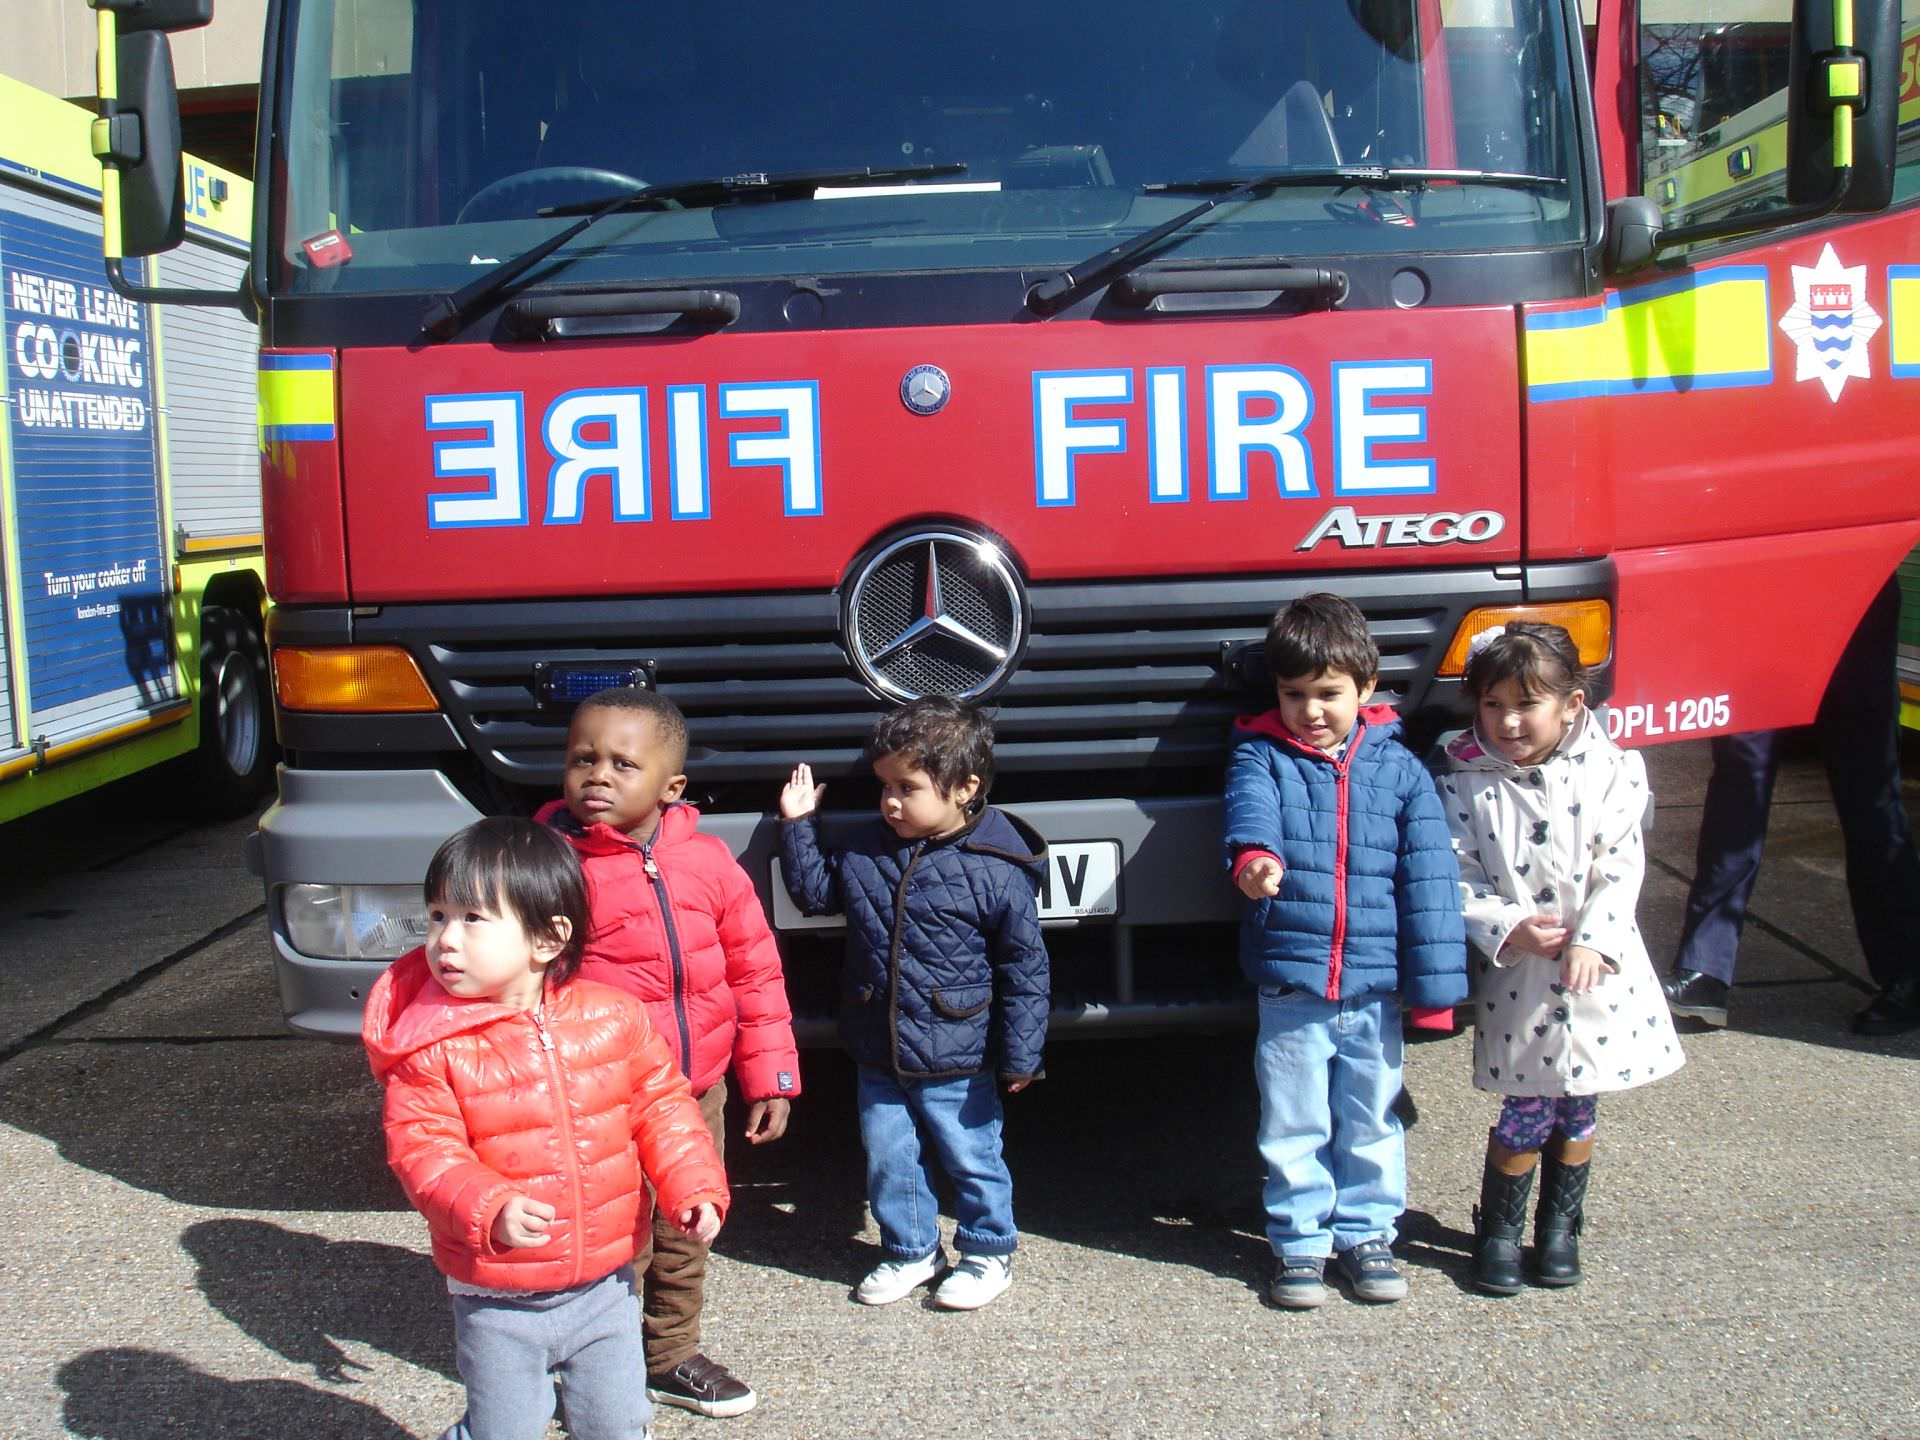 fire station image